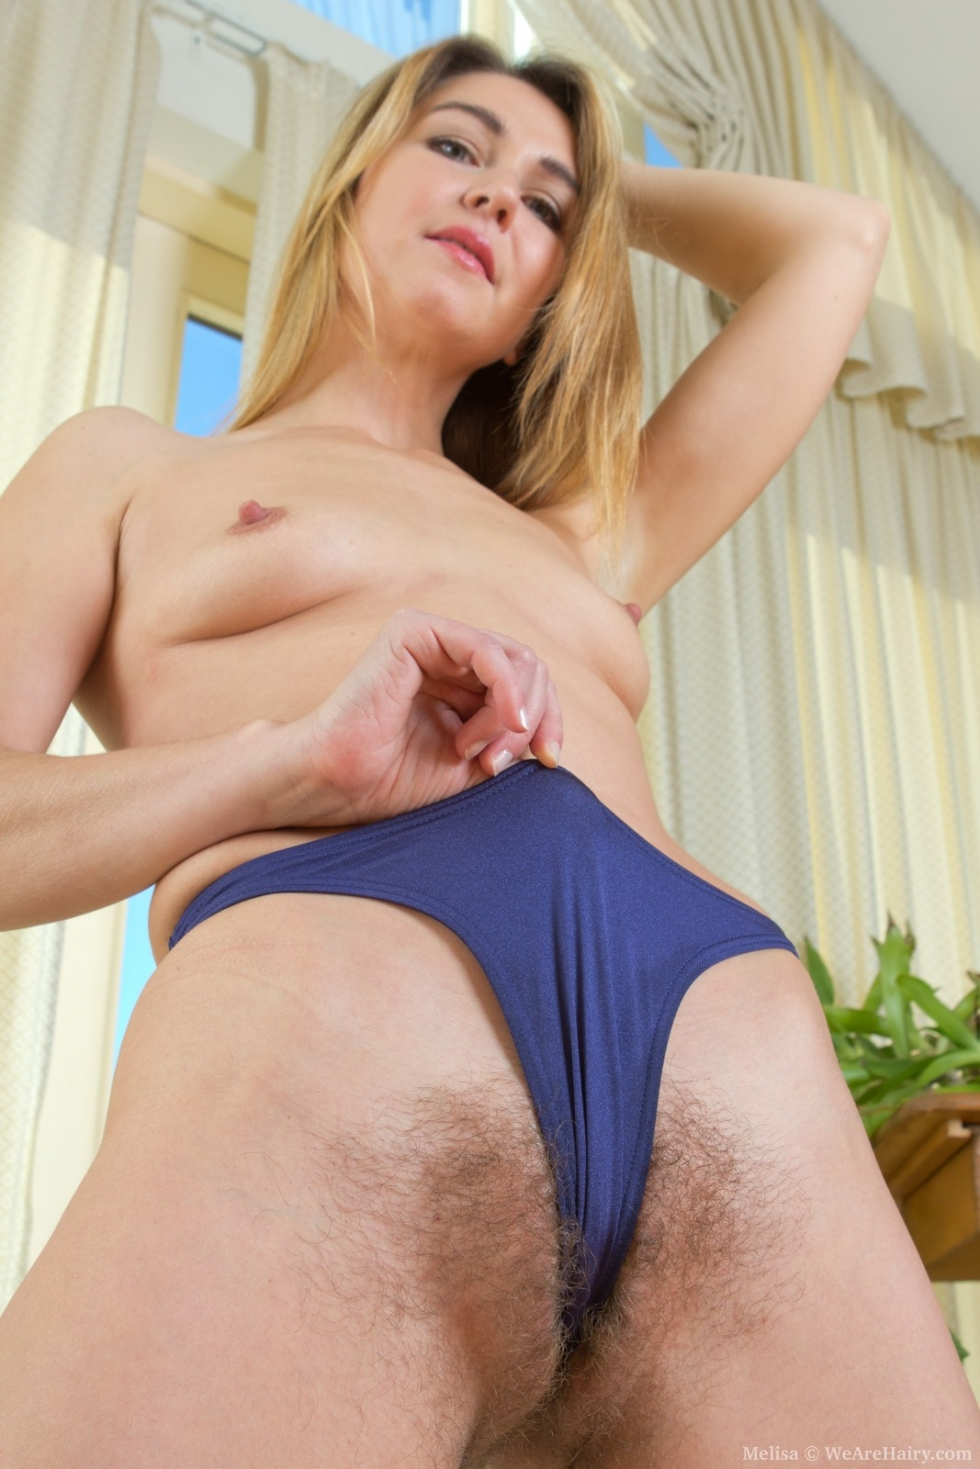 nude play mates showing hairy pussy